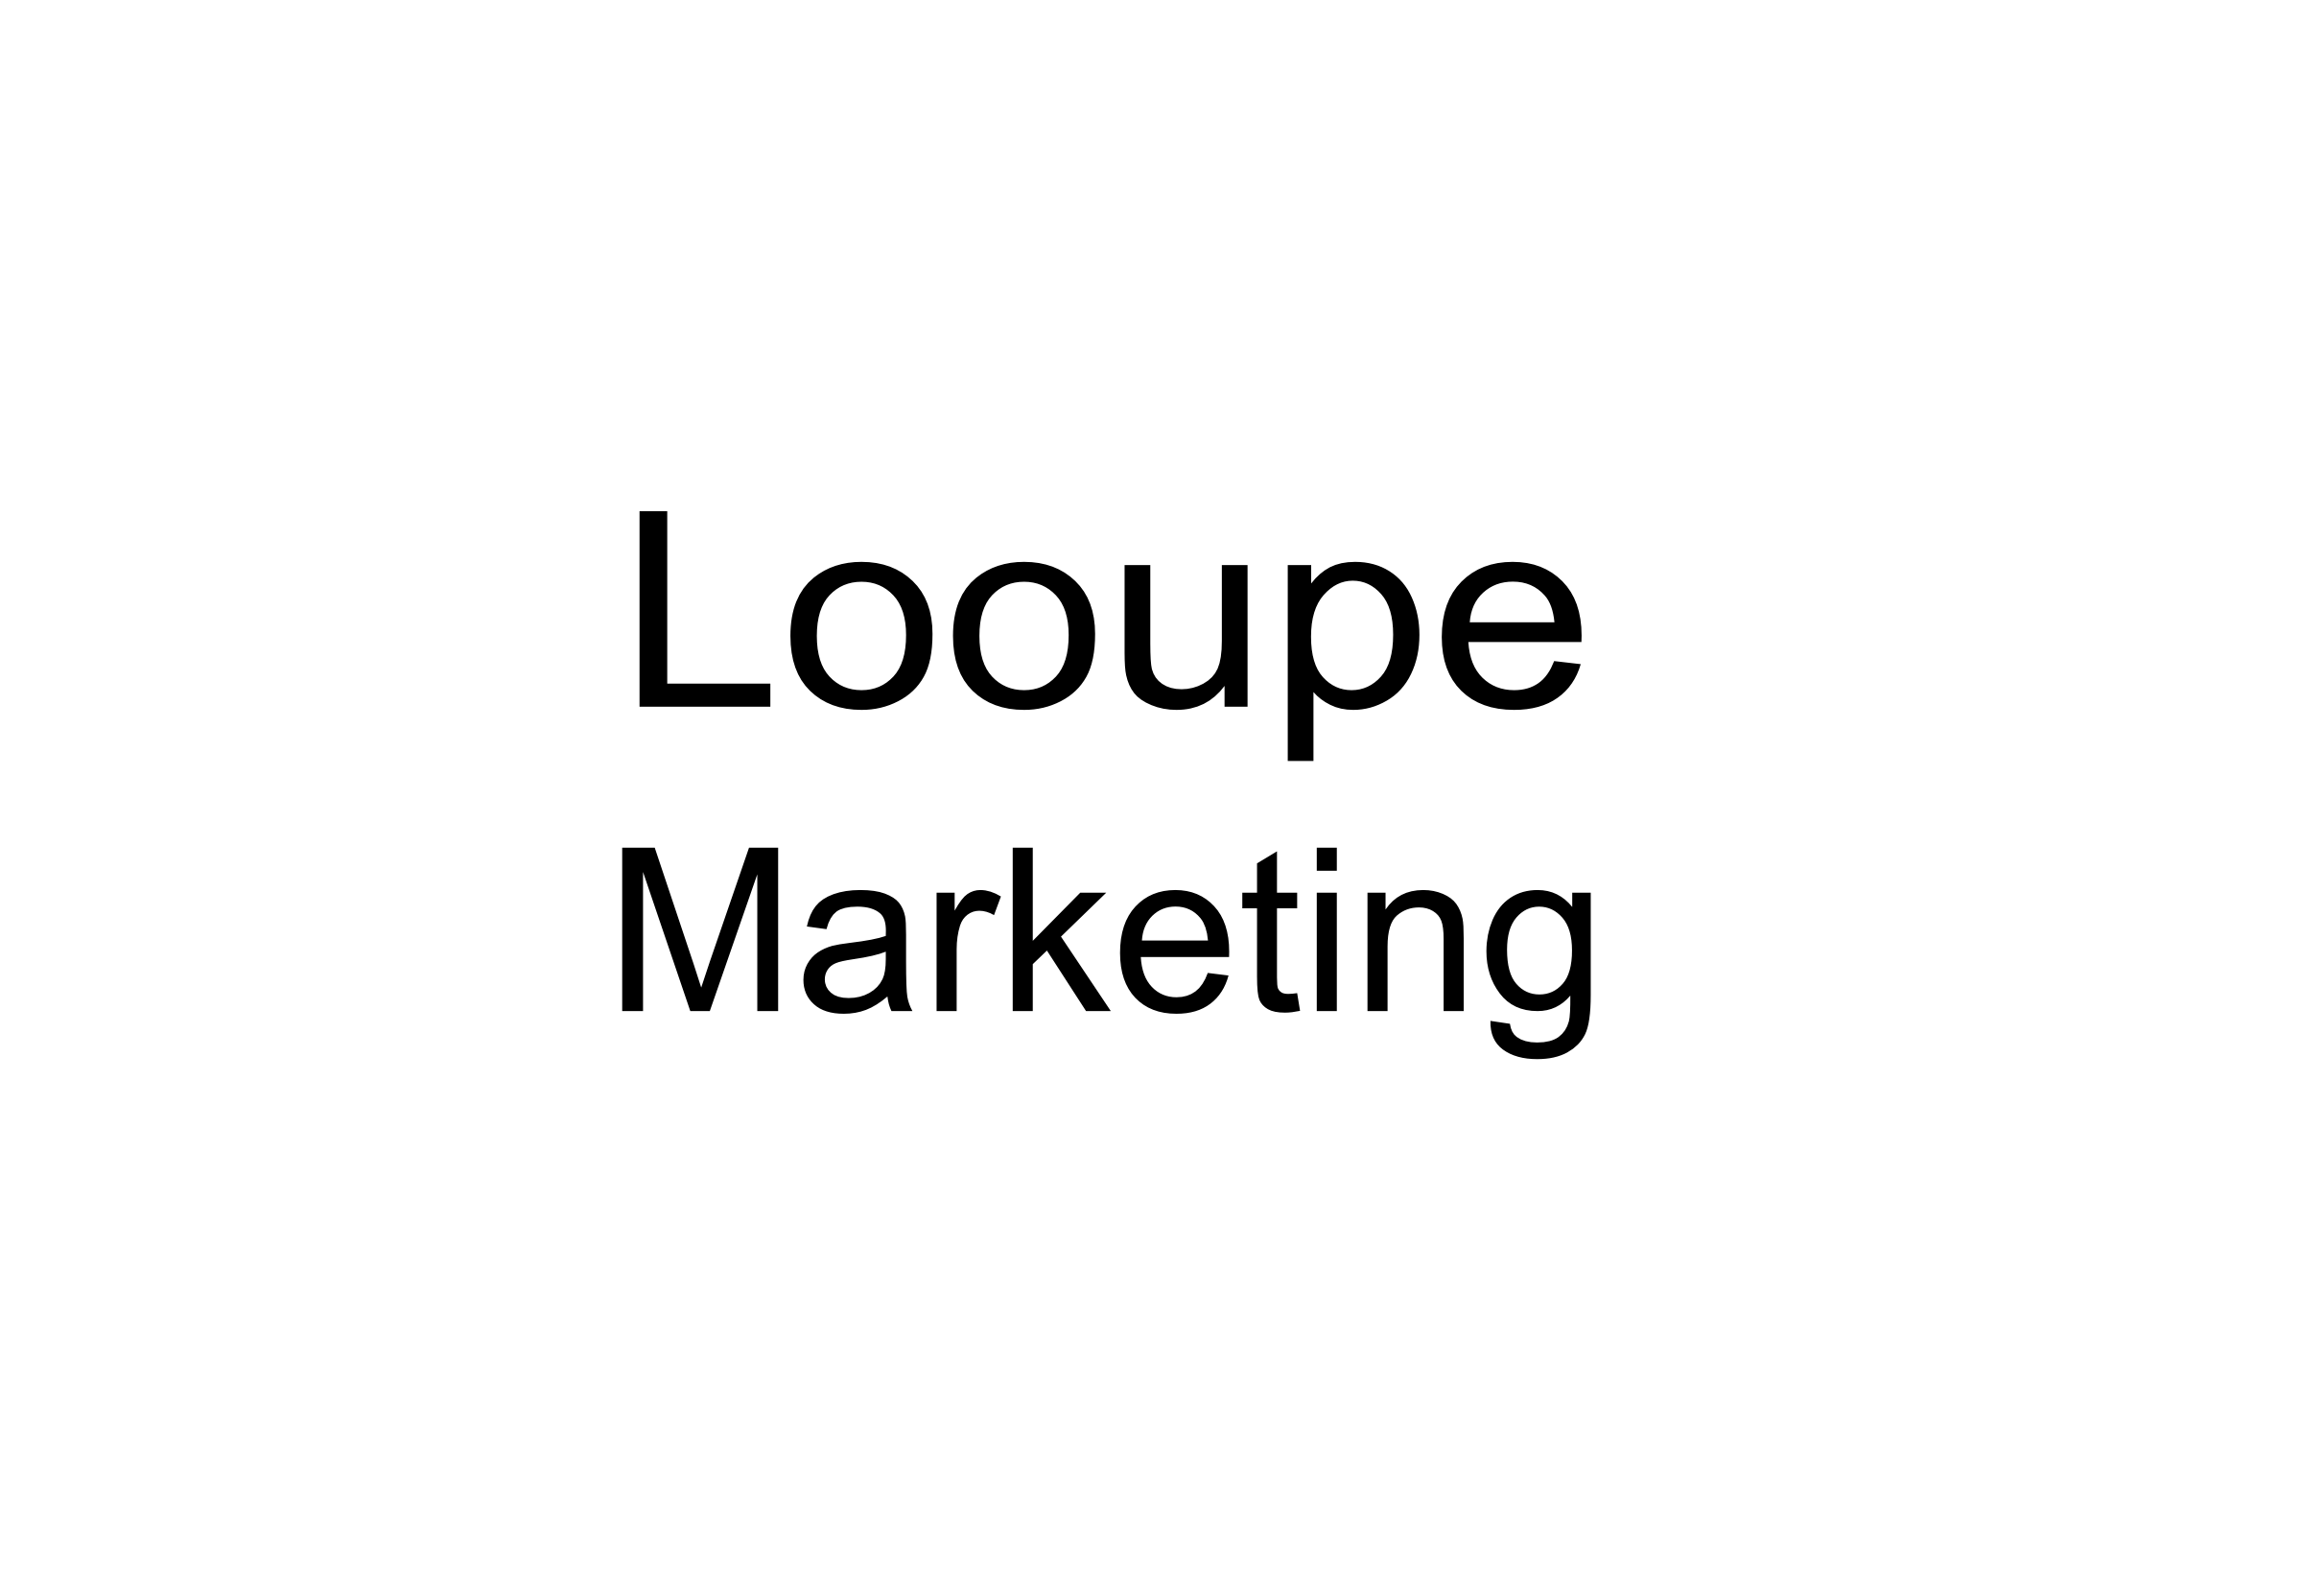 Looupe Marketing by Looupe-Marketing